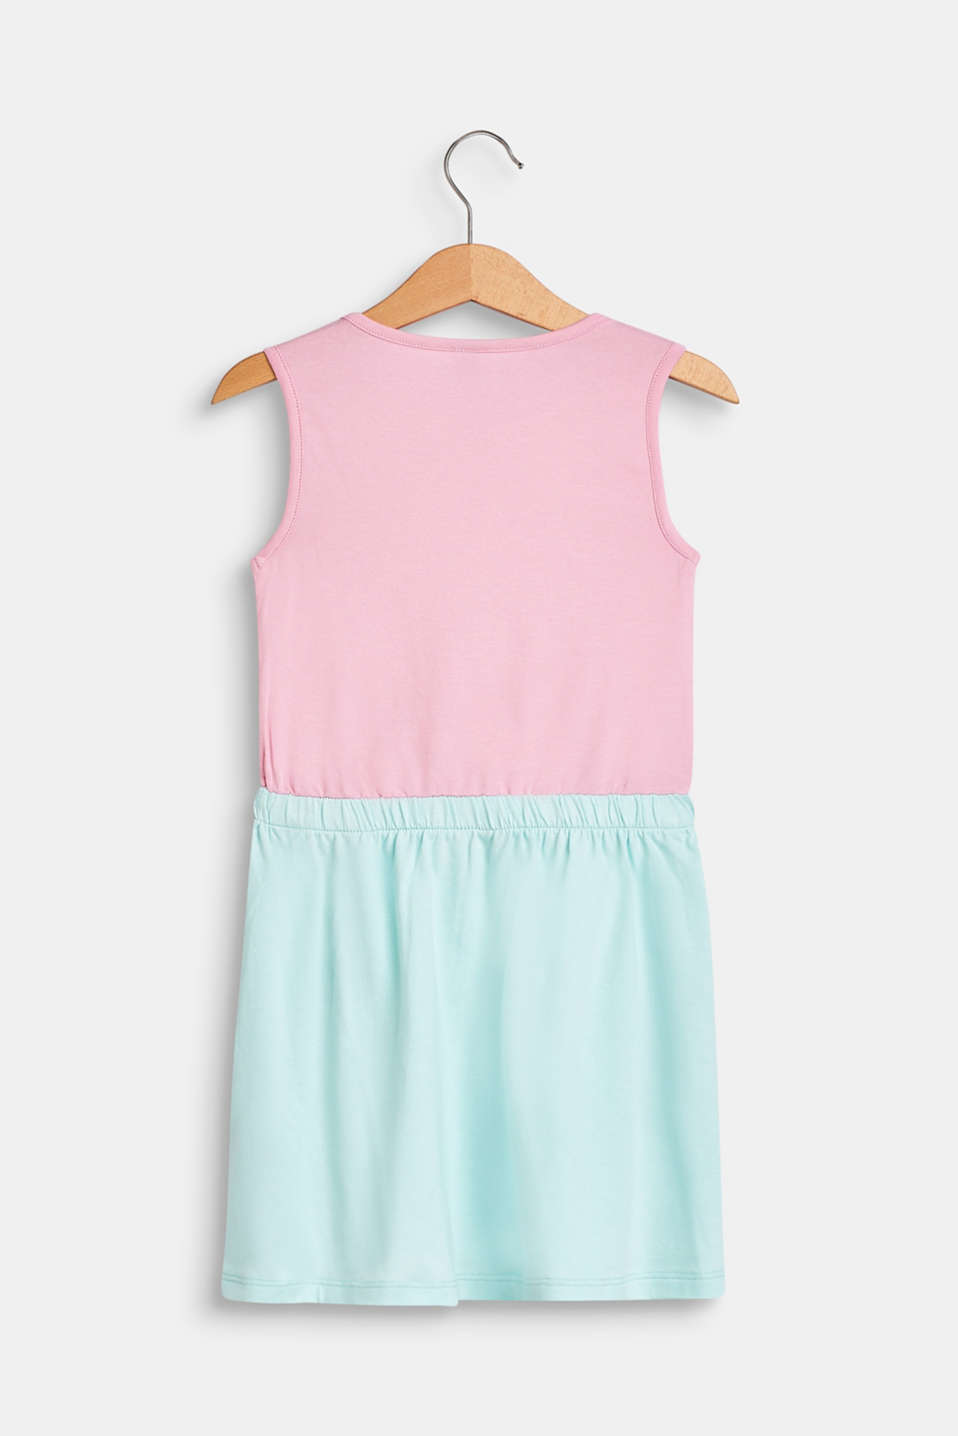 Jersey dress with an ice cream print, stretch cotton, CANDY PINK, detail image number 1